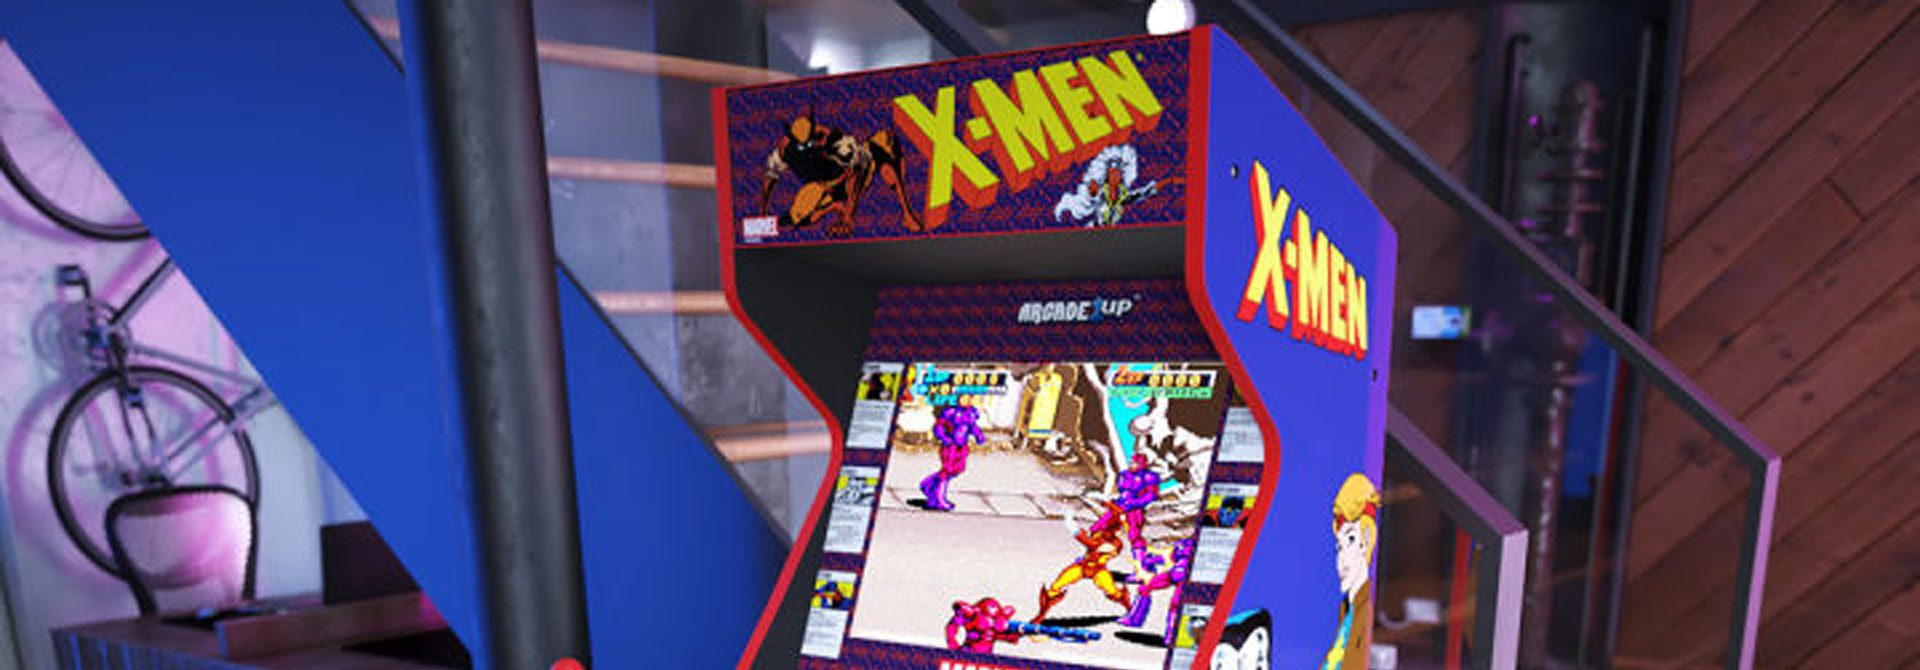 Arcade 1Up Reveals Killer Instinct, Dragon's Lair, X-Men And More